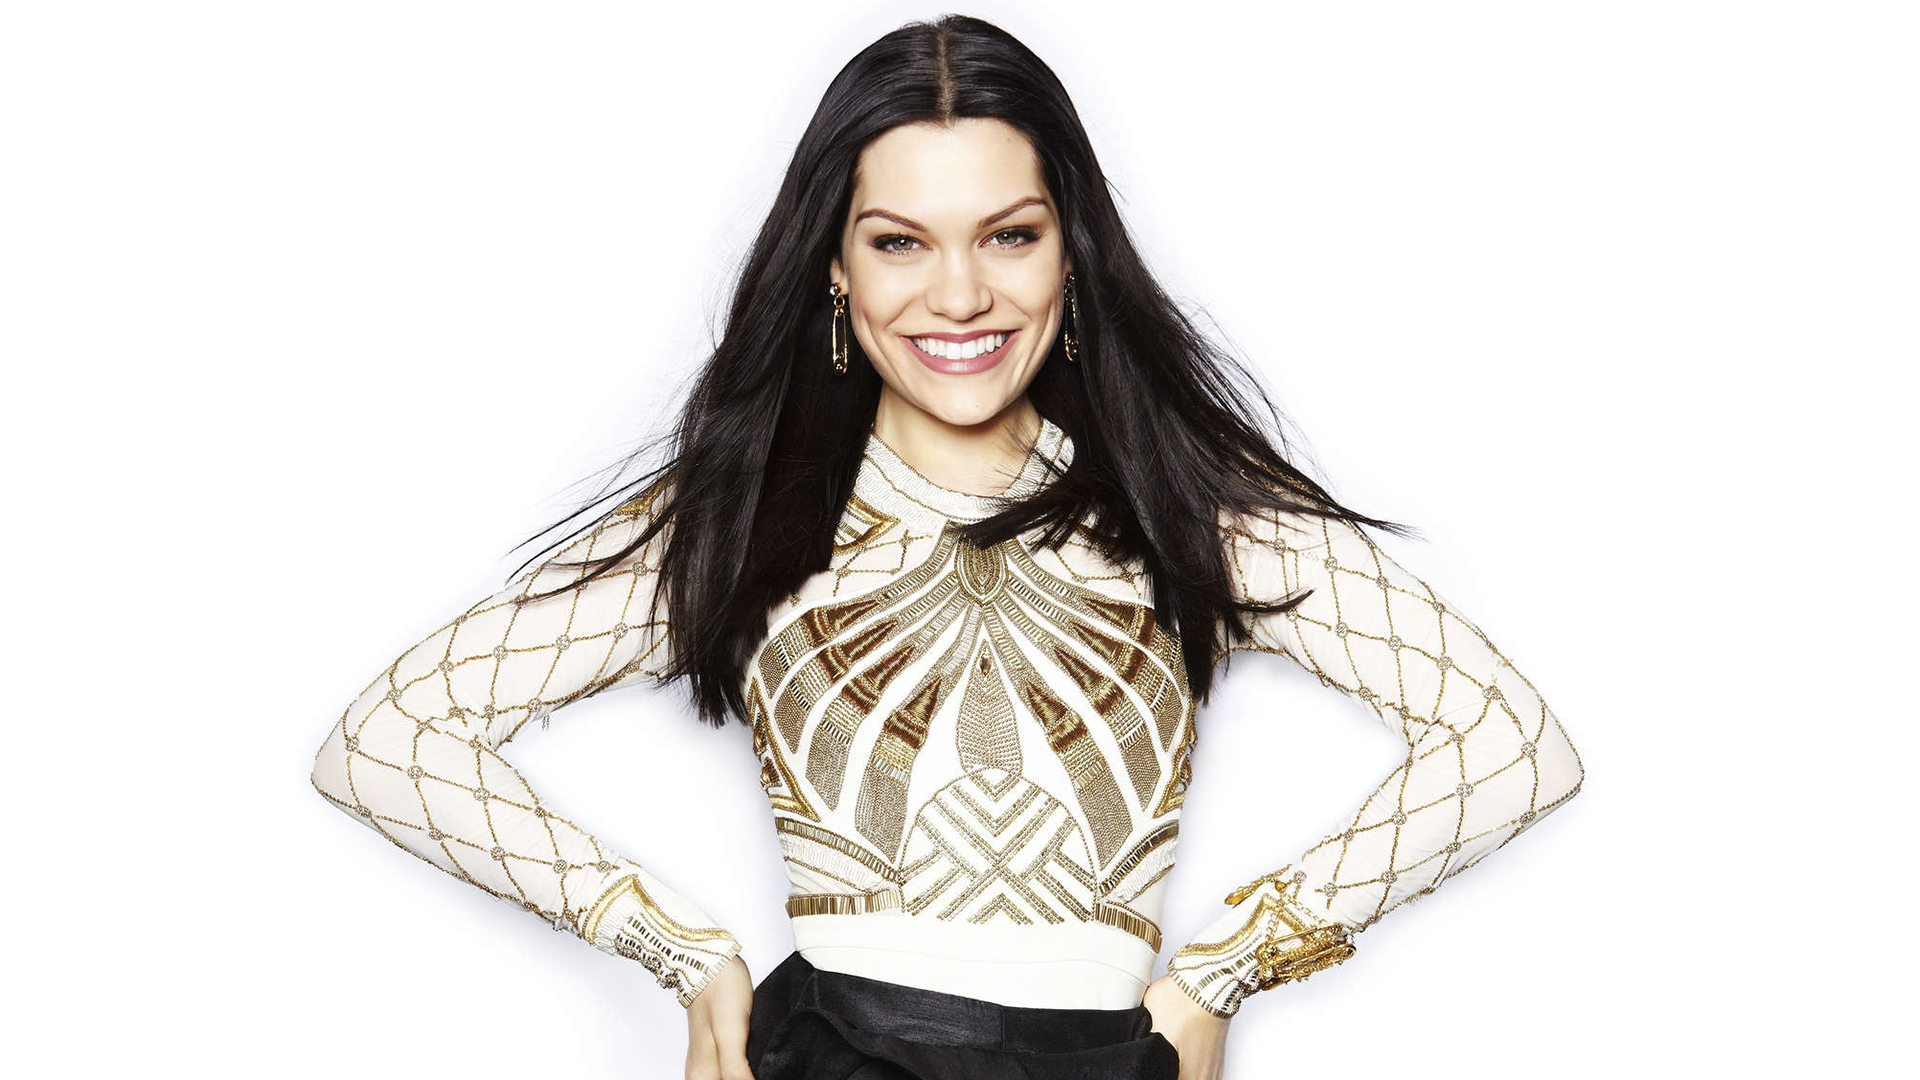 Jessie J Wallpapers Images Photos Pictures Backgrounds